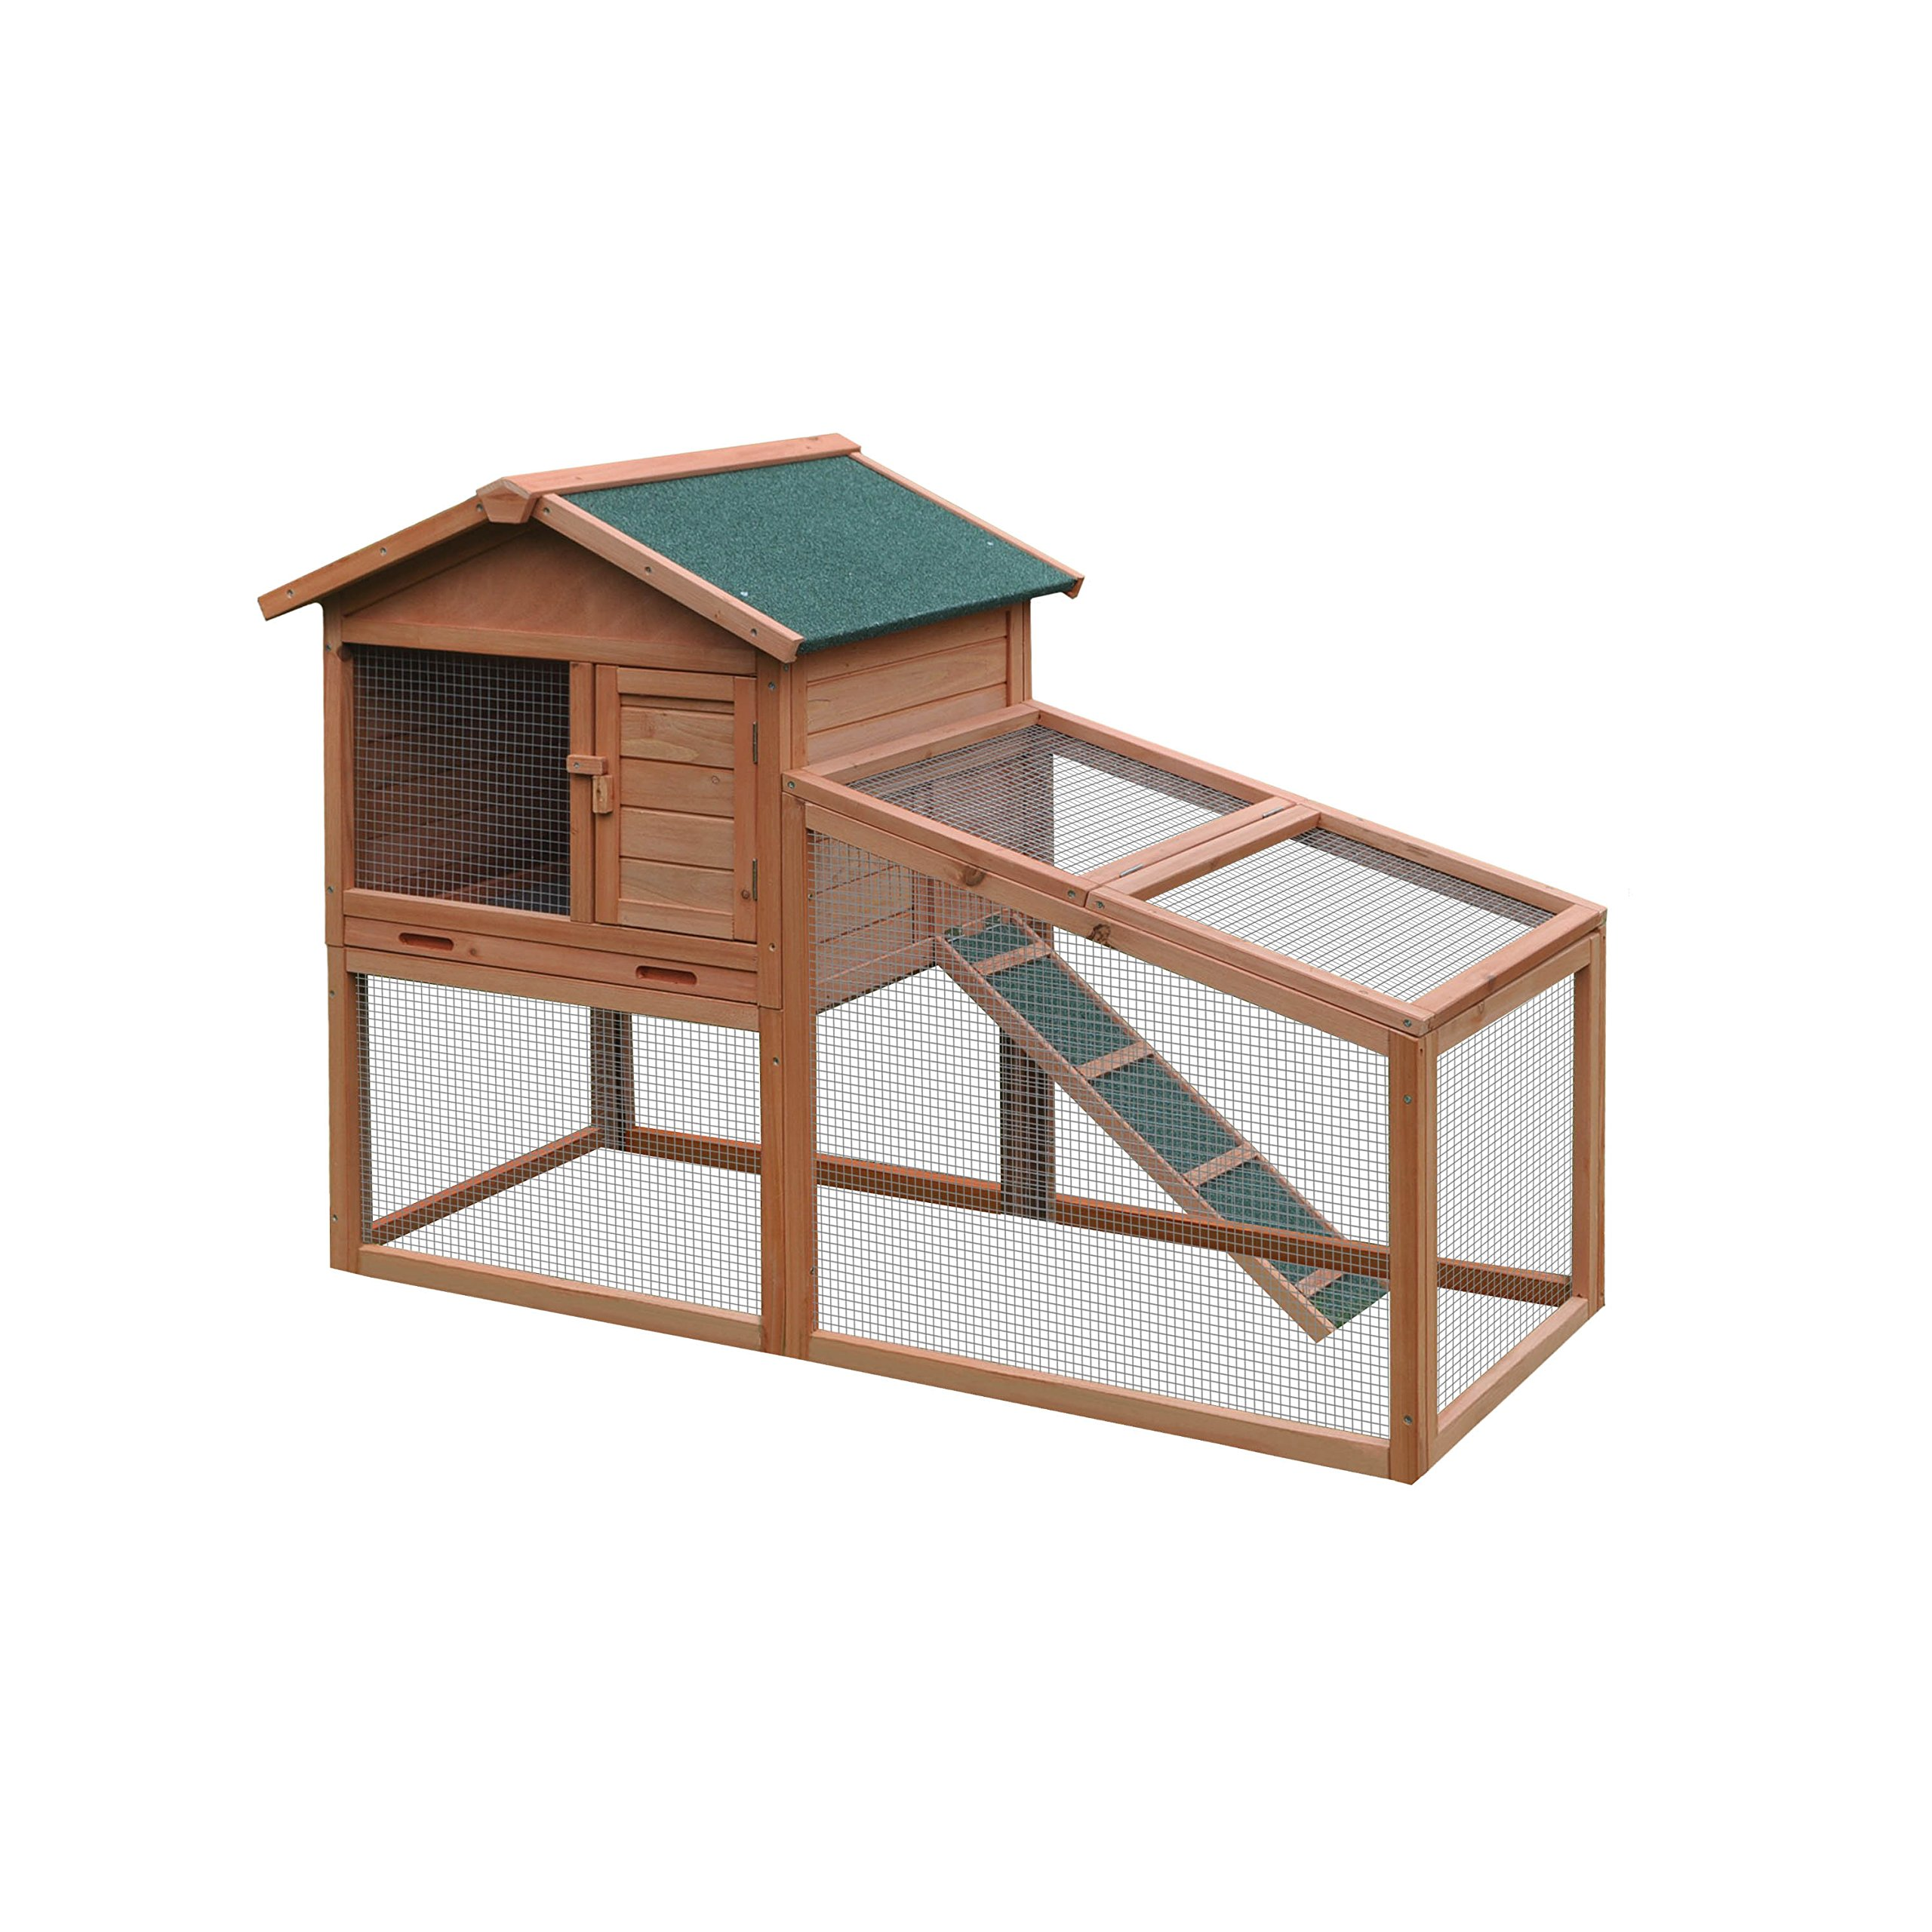 ALEKO ACCRH56X25X39 Wooden Pet House Poultry Hutch, Rabbits Chickens Hen Coop Wooden Cage 56.5 x 25.6 x 39.4 Inches